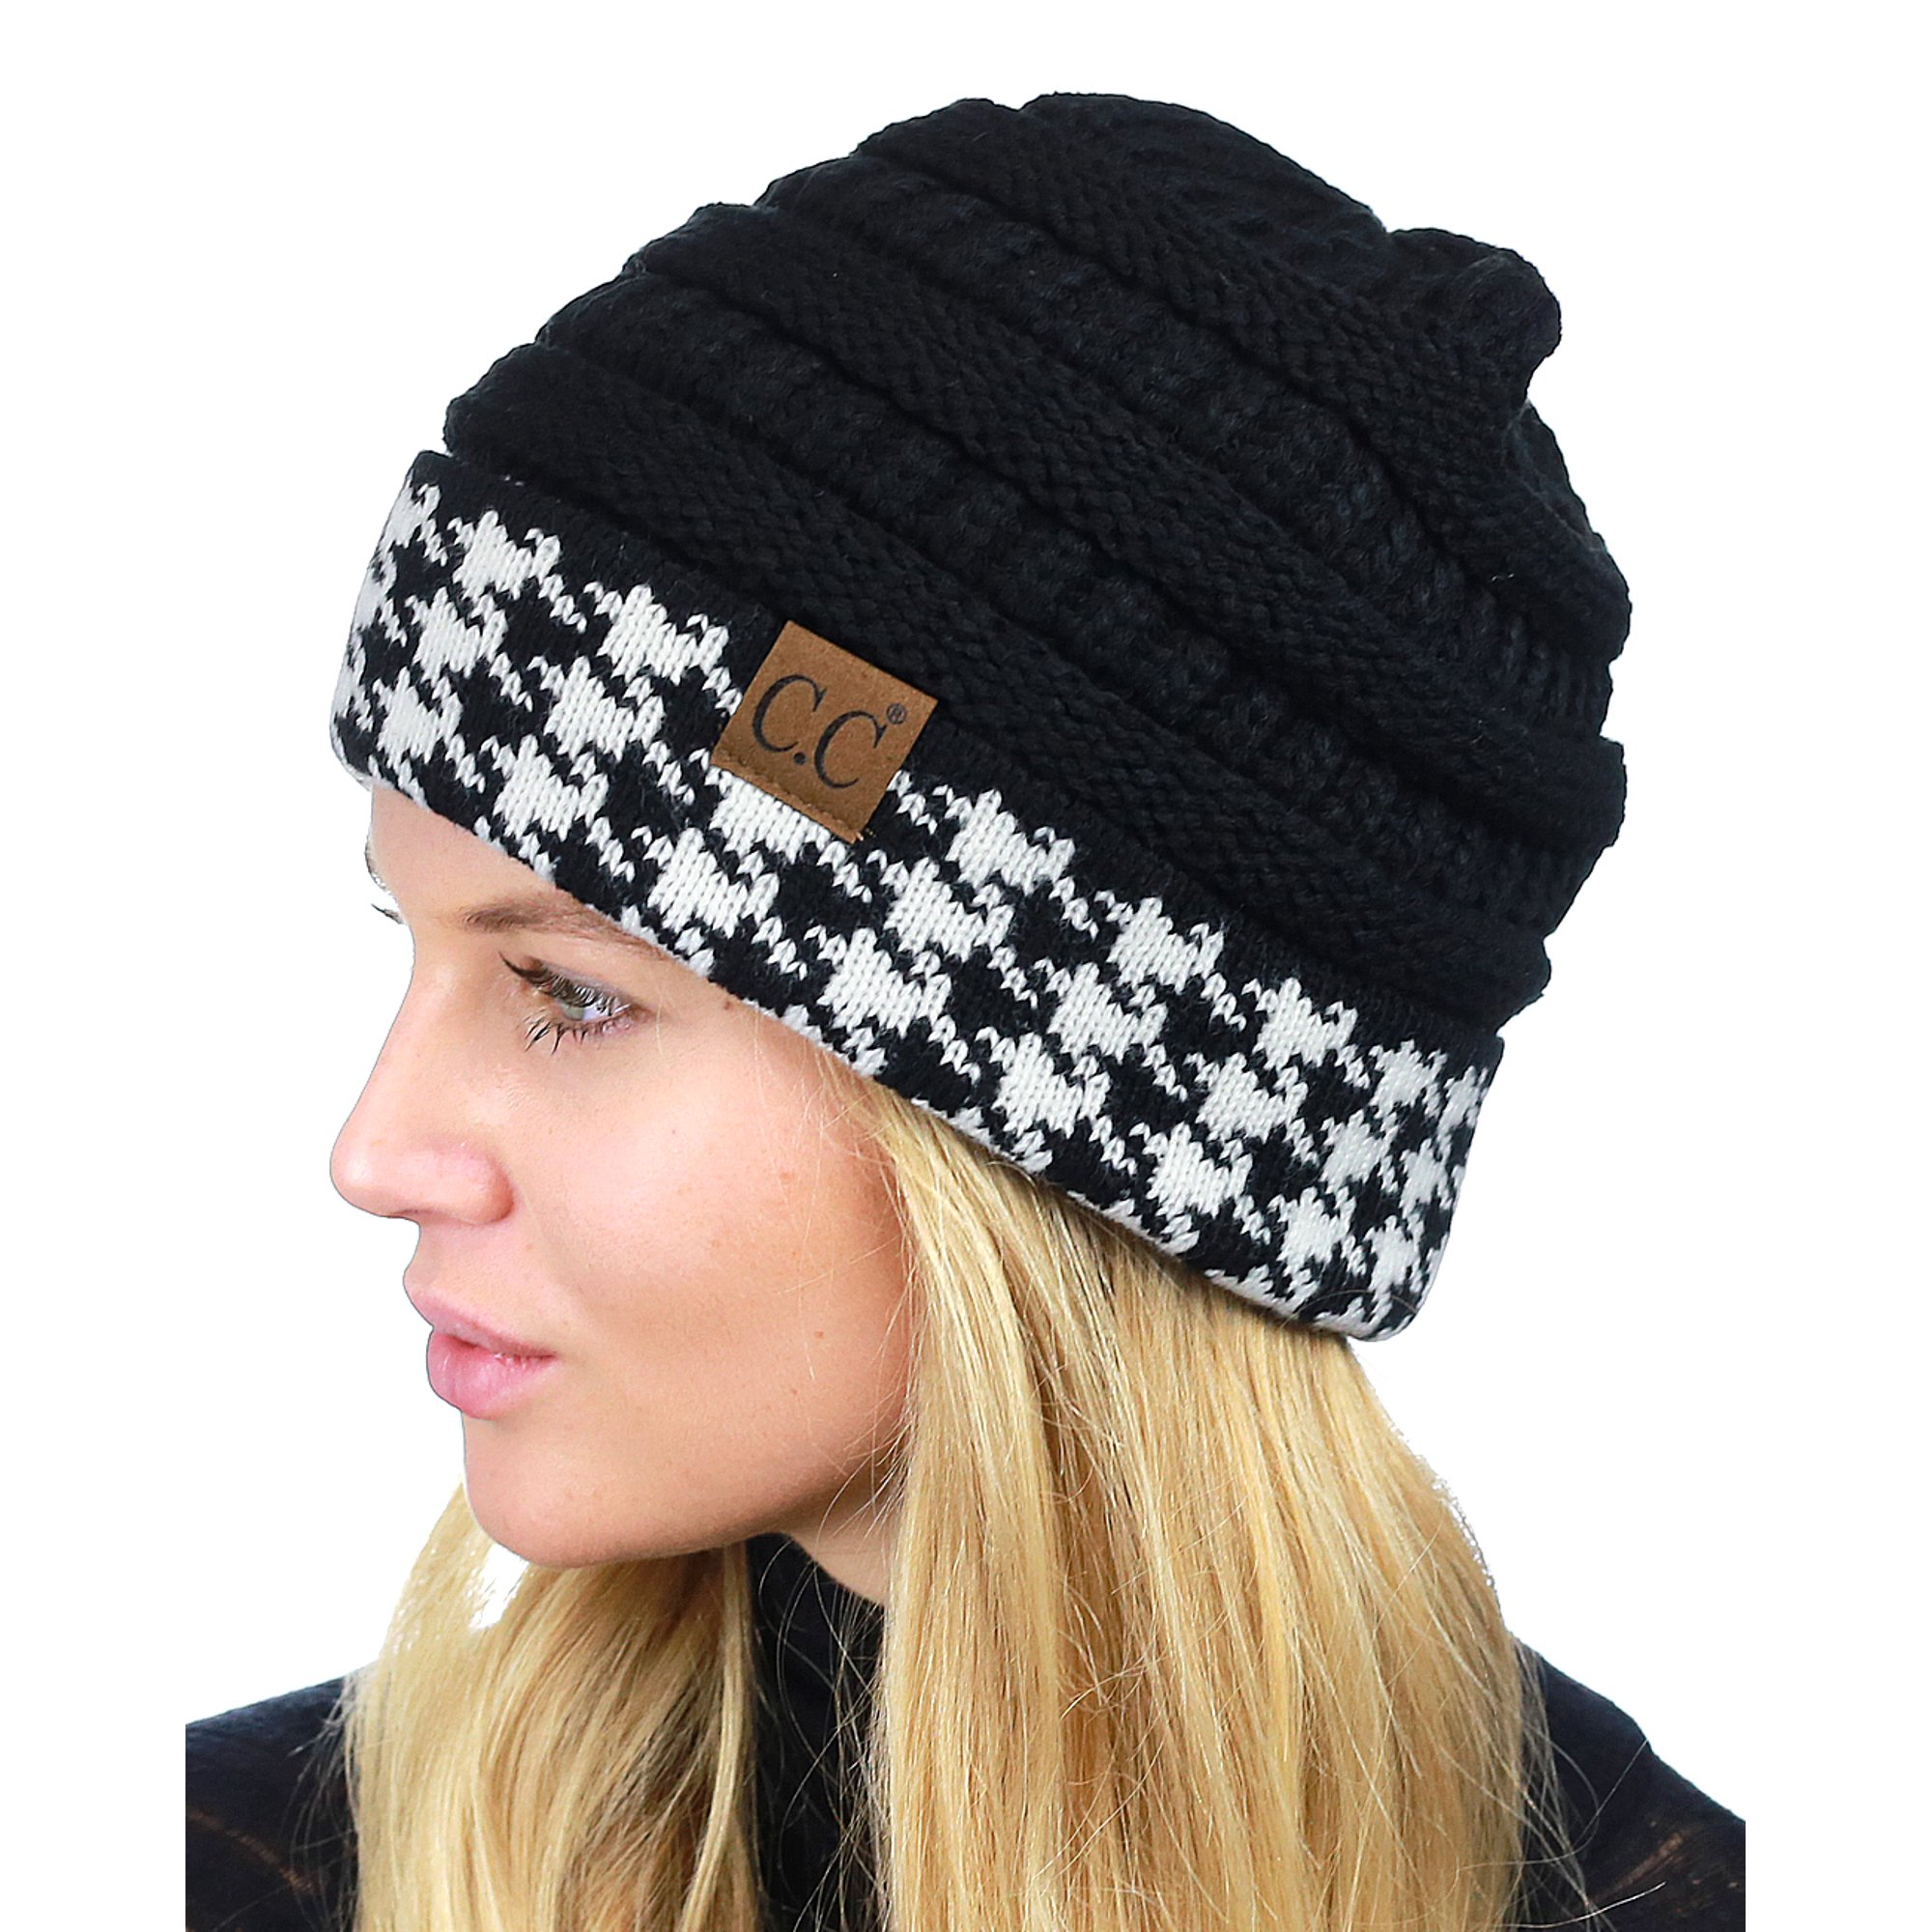 497819f5963 C.C Cable Knit Soft Stretch Multicolor Stitch Cuff Skully Beanie Hat ...